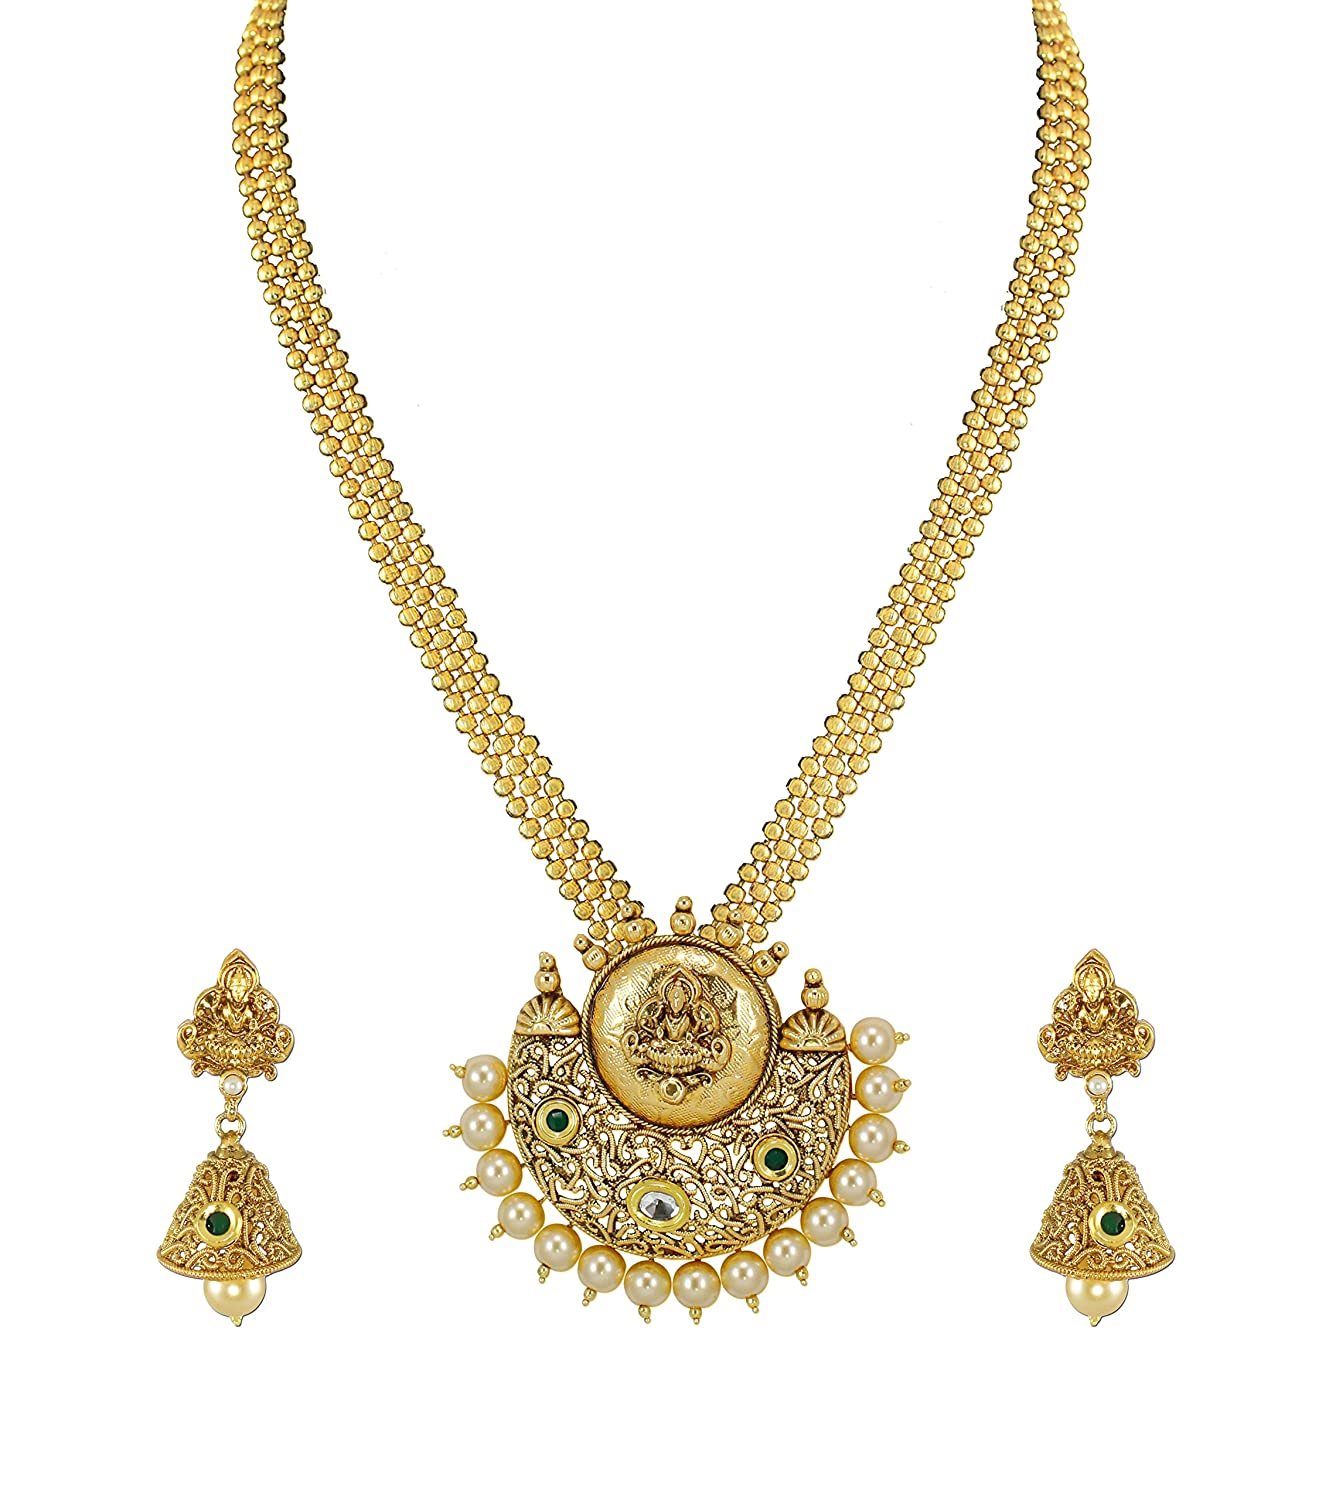 designer product shubam taazataaza com pearls set necklace